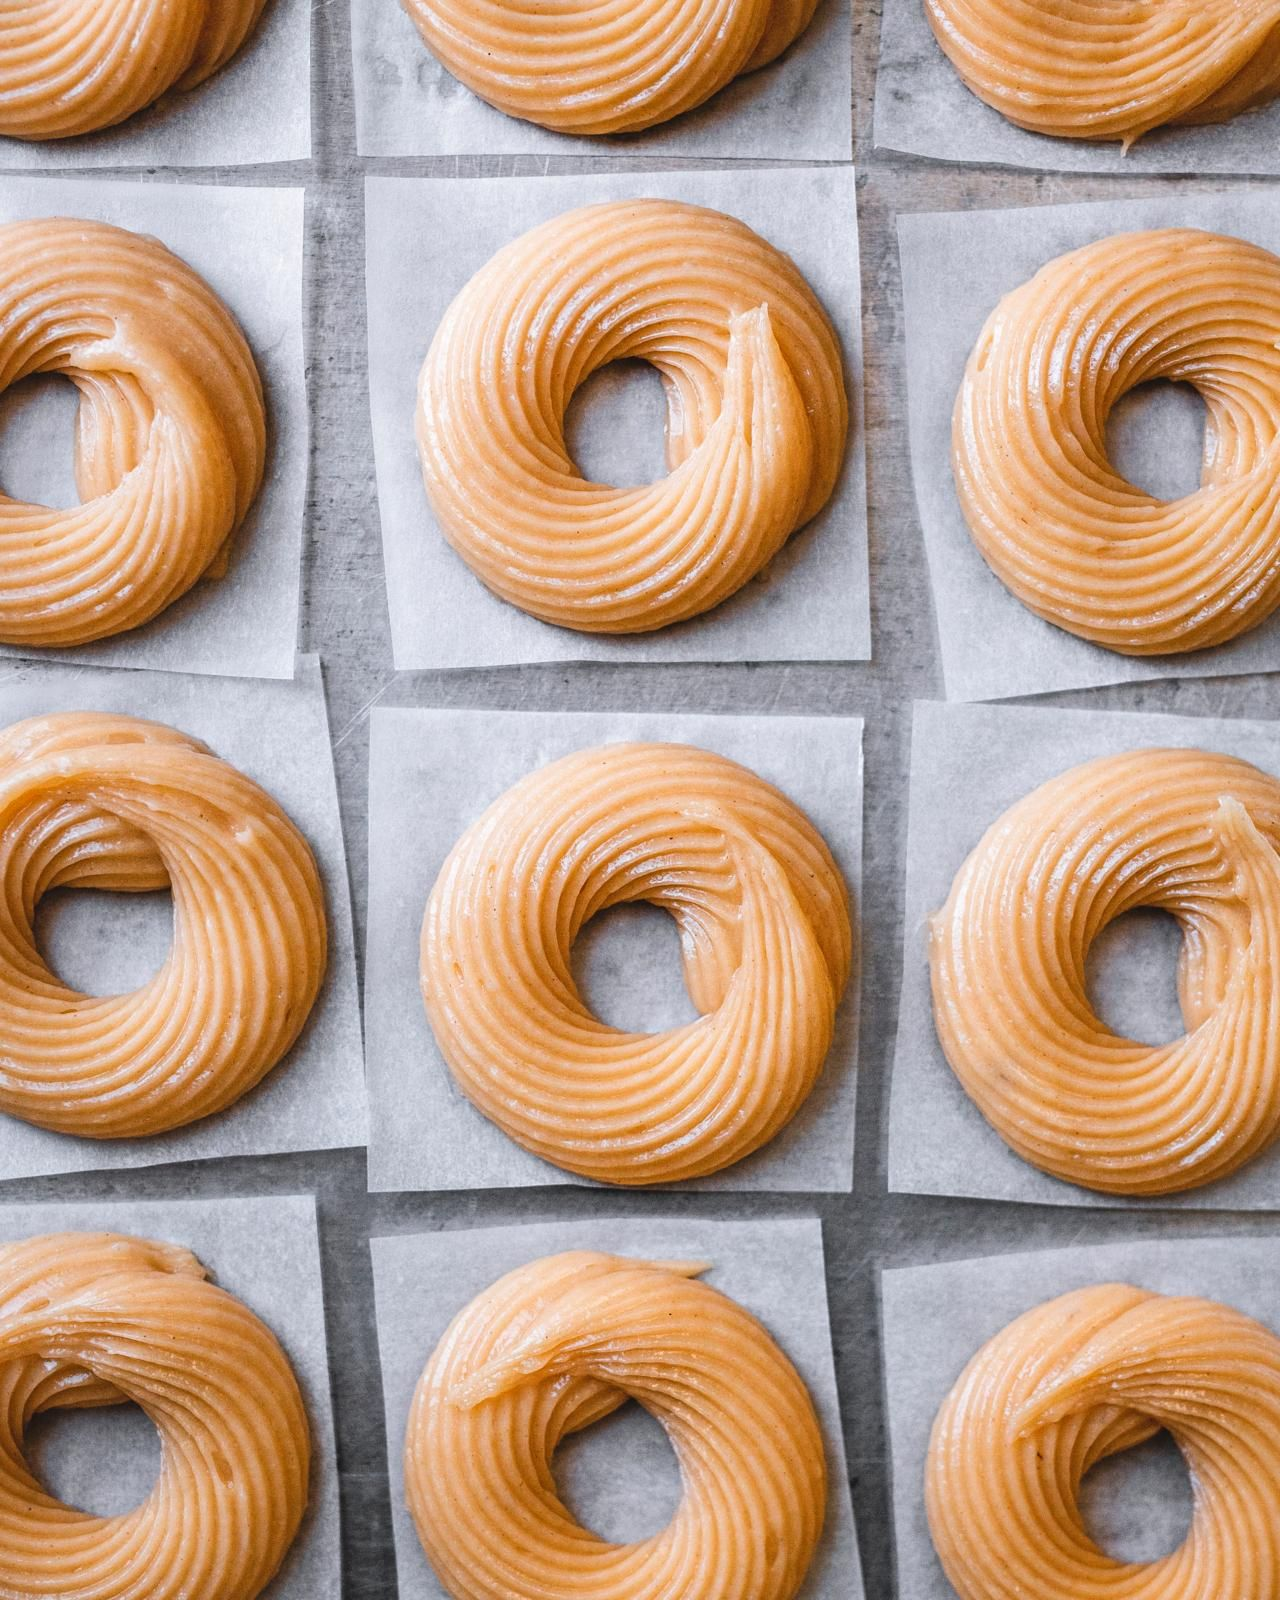 Crullers piped